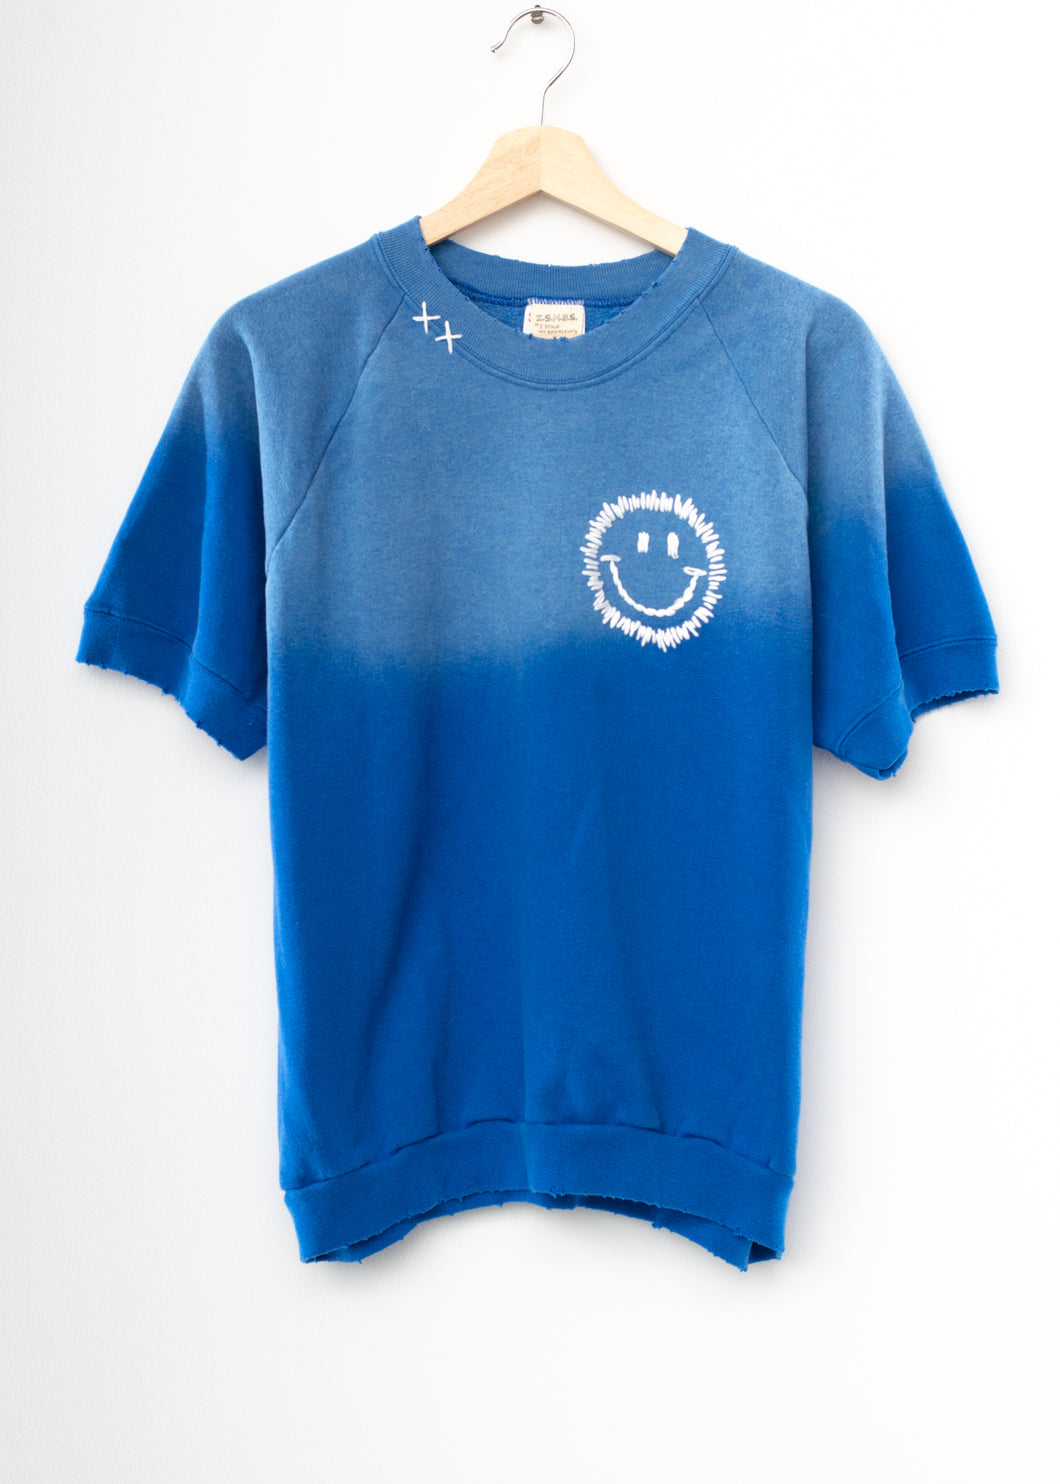 Happy Face Shorty Sweatshirt - True Blue (Size L)